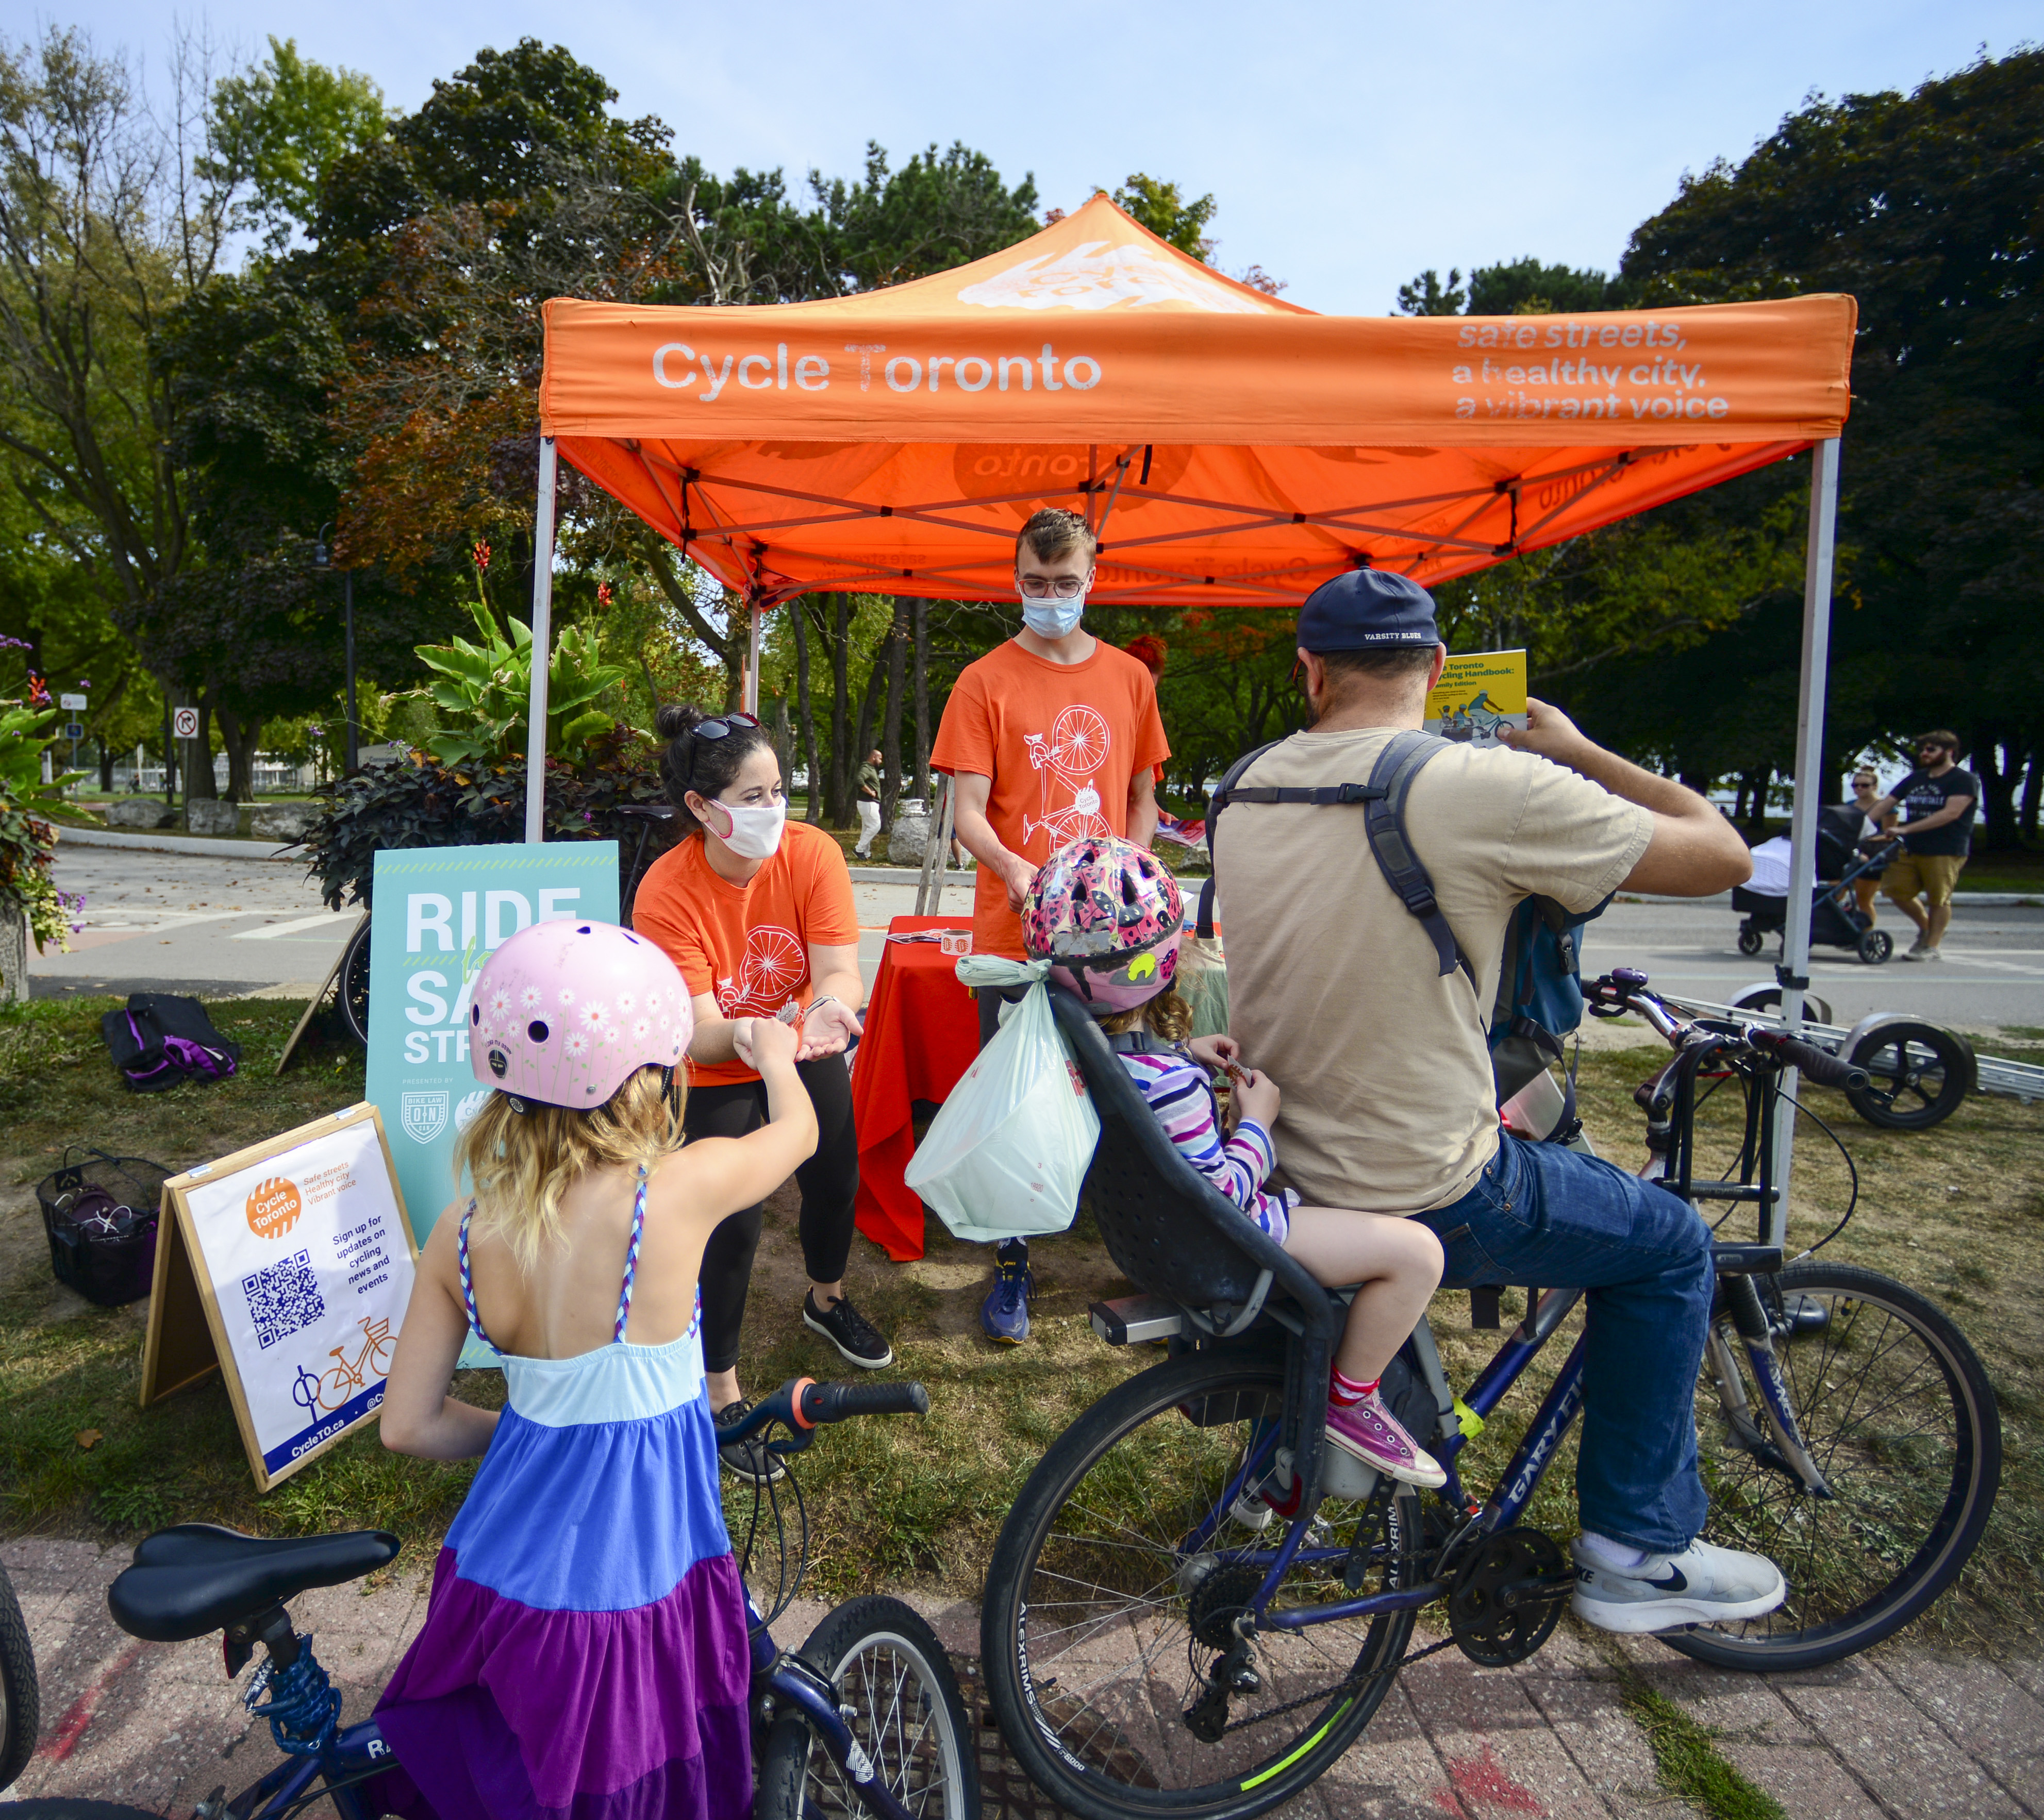 A family with young children approaches an orange Cycle Toronto tent with staff there.